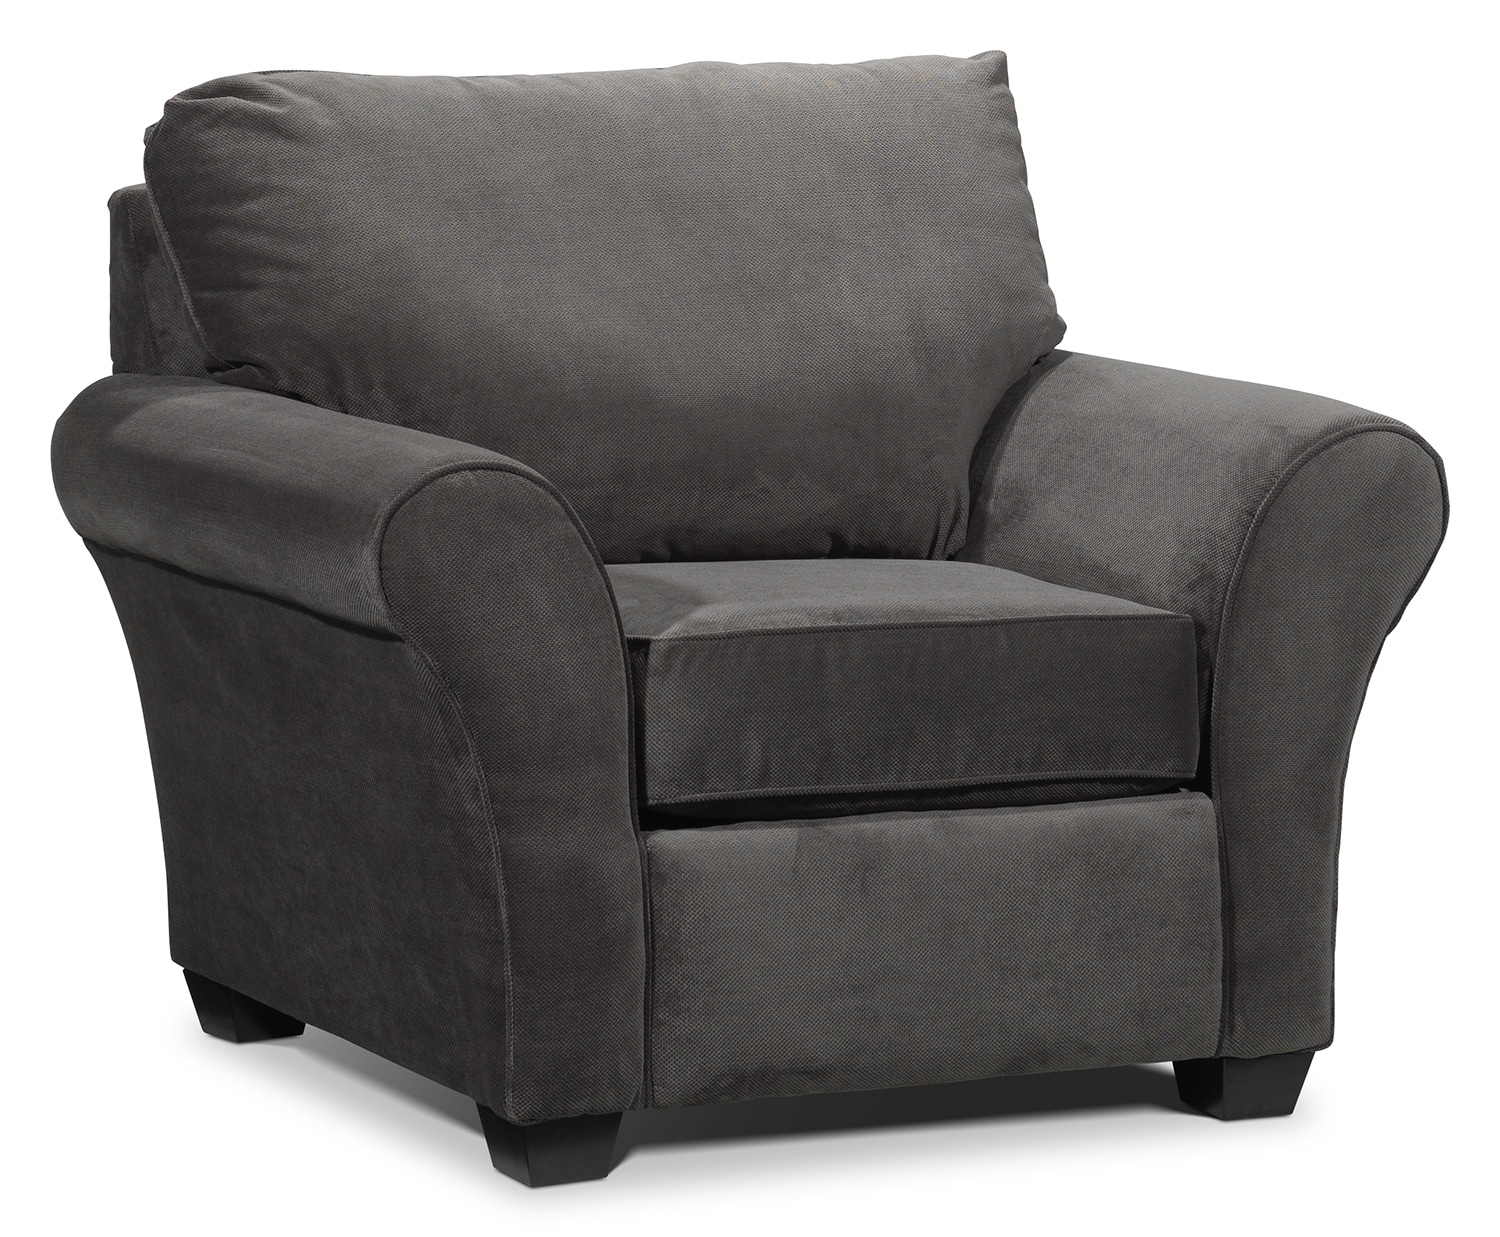 Living Room Furniture - Langley Chair - Charcoal